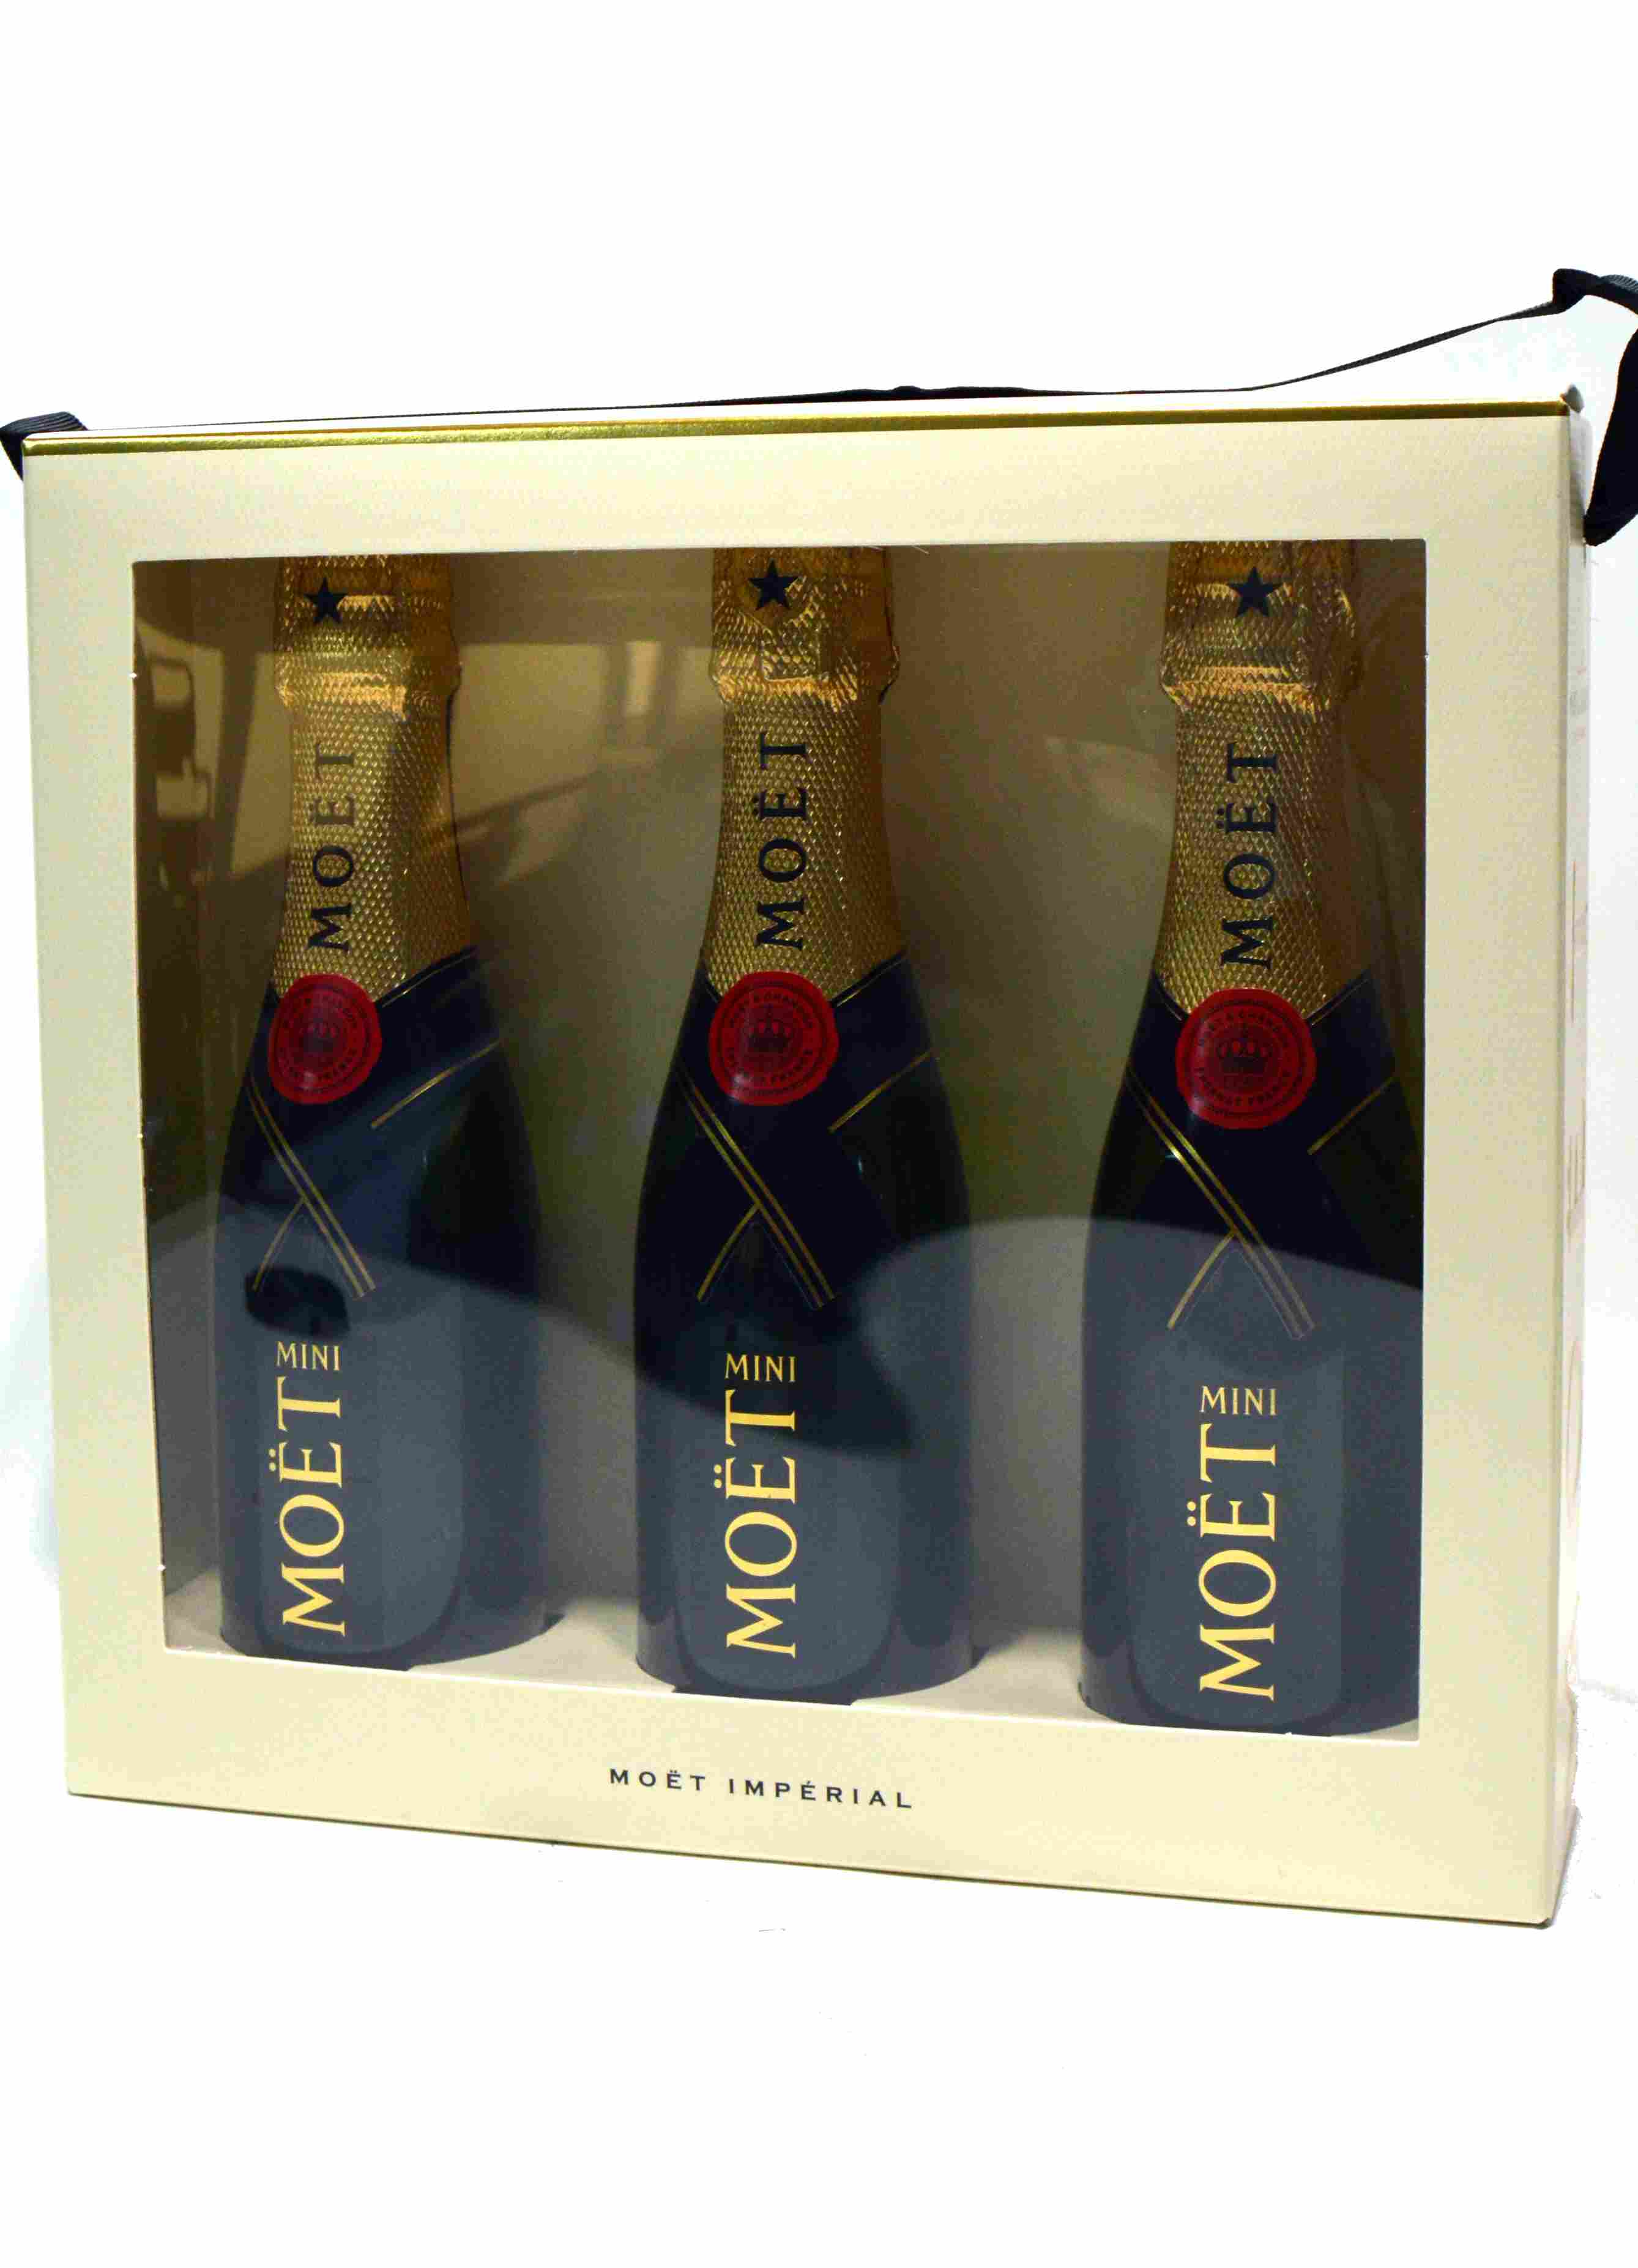 Moët & Chandon Mini Estuche 3 Uds.